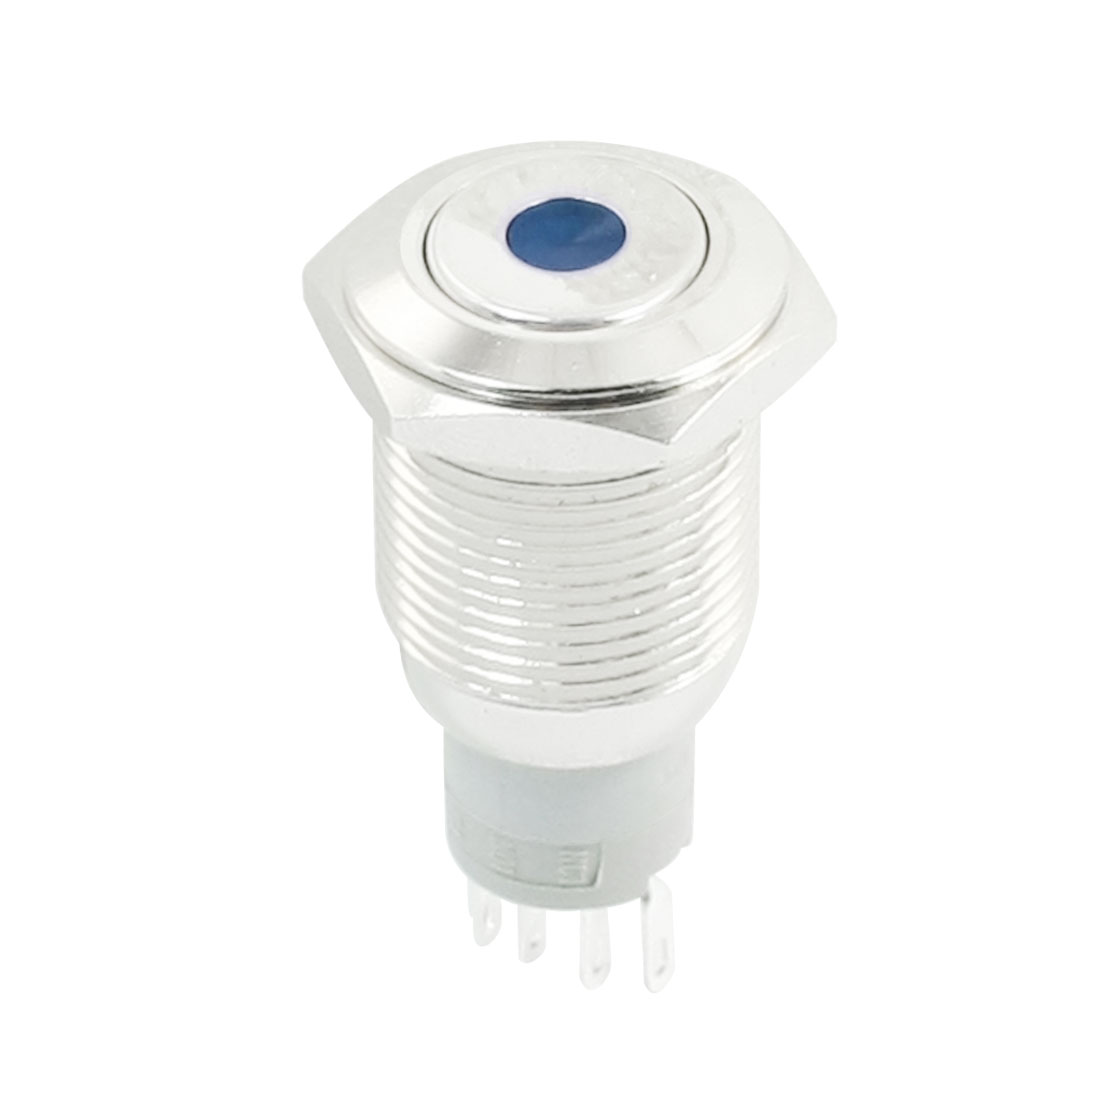 DC12V Blue Dot LED Indicator Flat Head SPDT 1NO 1NC 5Pins 16mm Thread Momentary Metal Push Button Switch